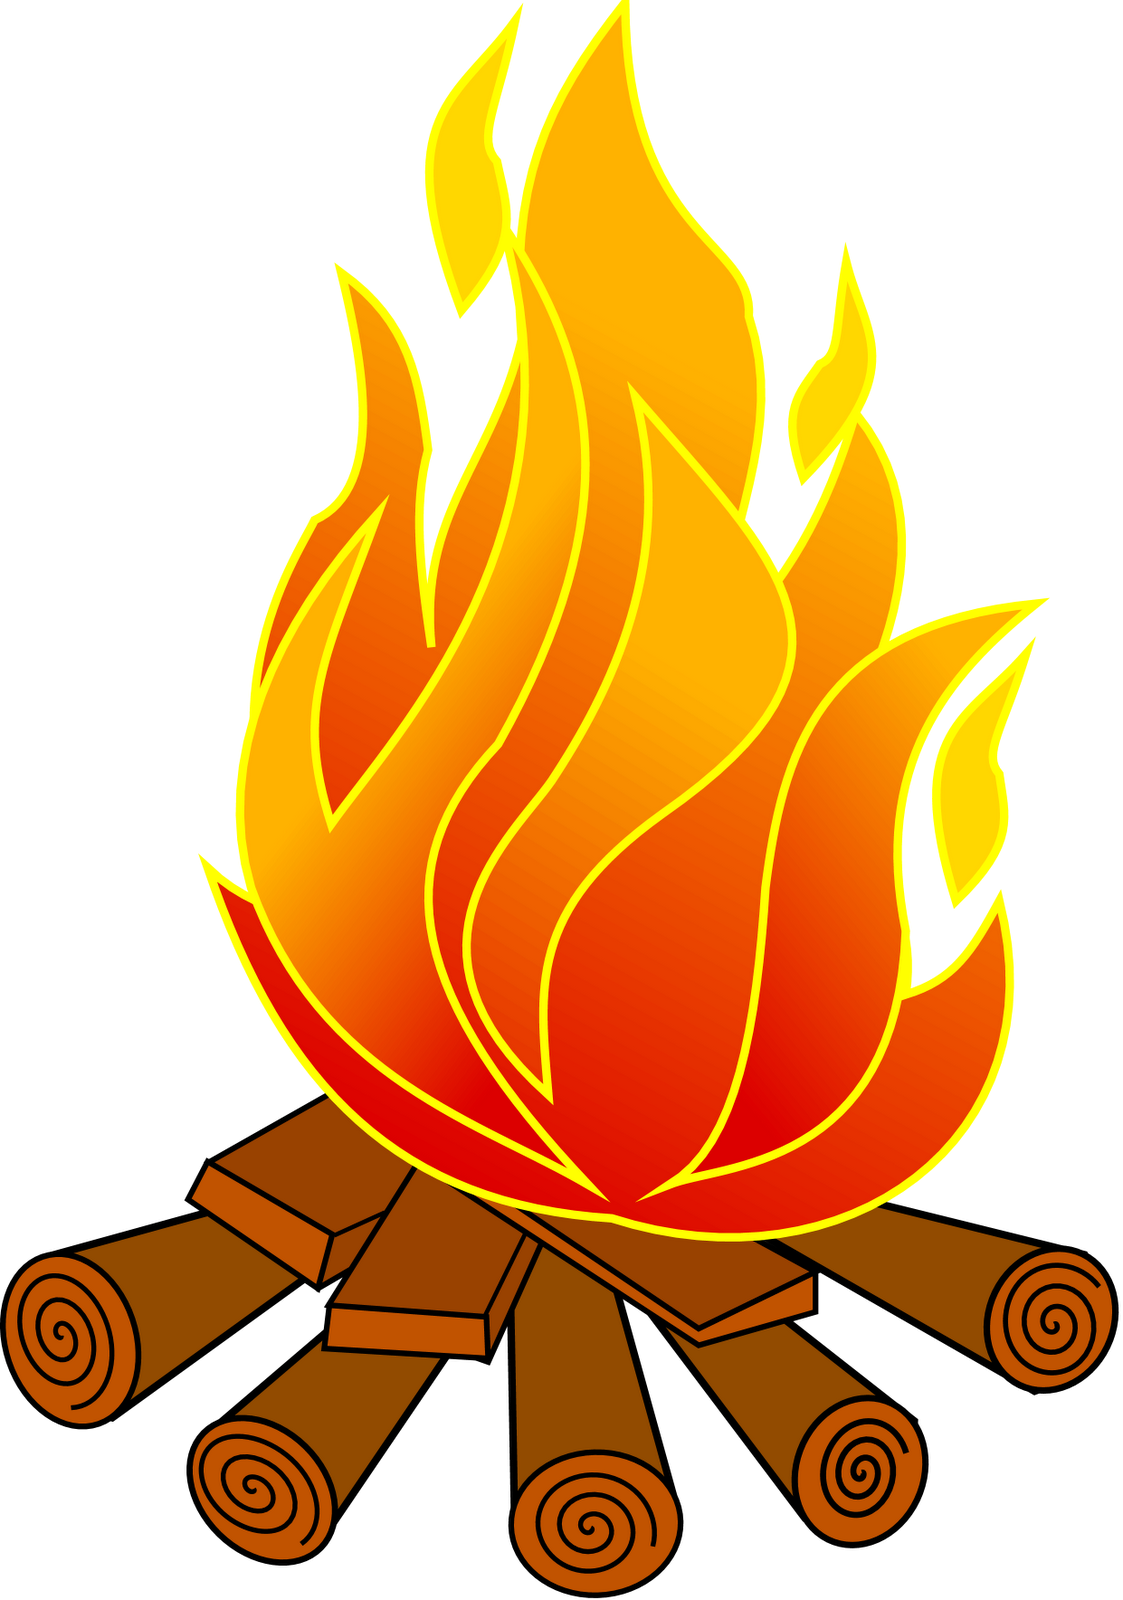 free clip art fire pit - photo #14